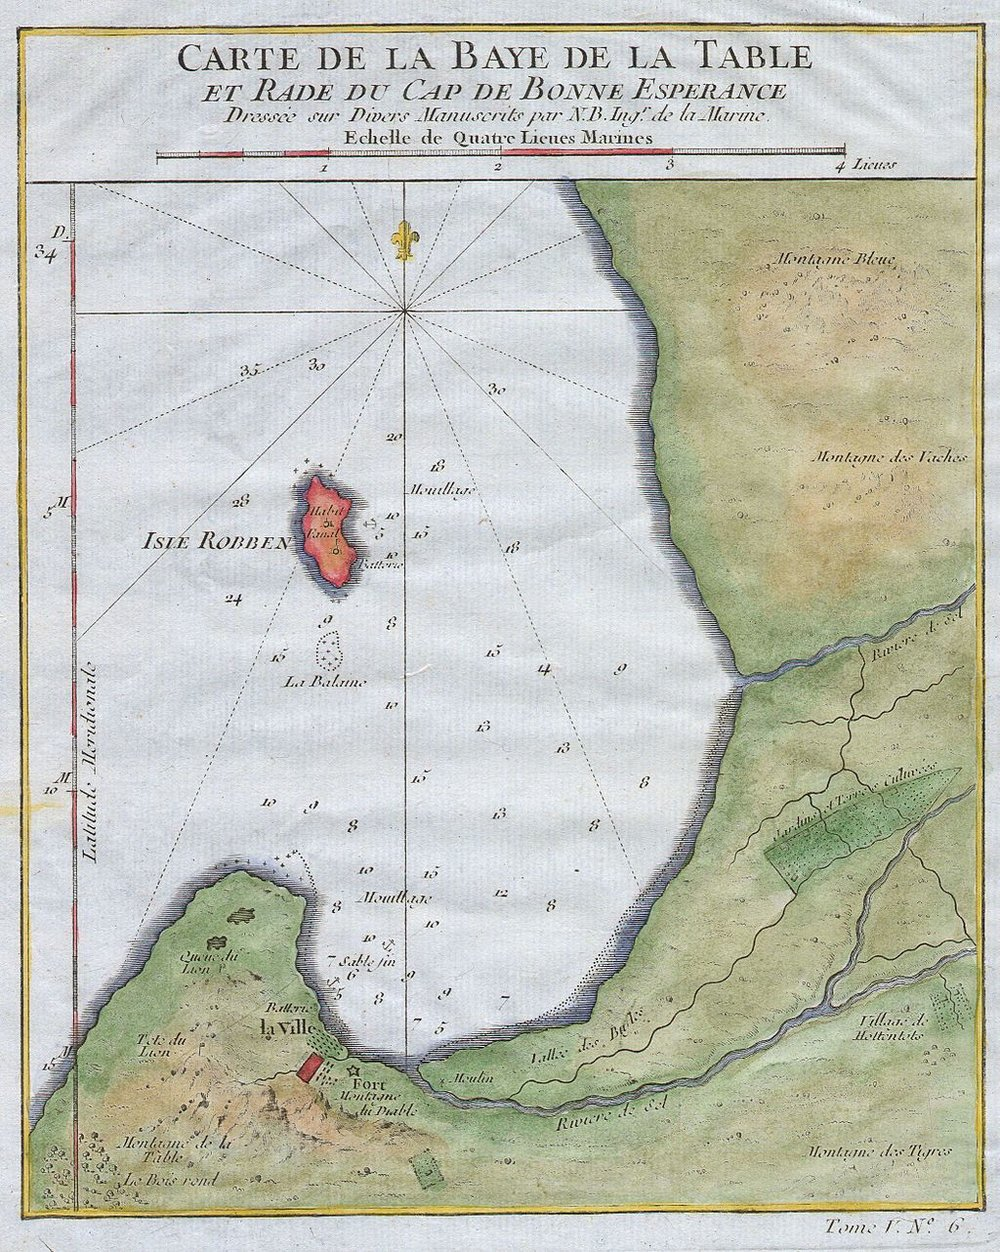 1763_Bellin_Map_of_Cape_Town_(Cape_of_Good_Hope)_South_Africa_-_Geographicus_-_GoodHope2-bellin-1763.jpg